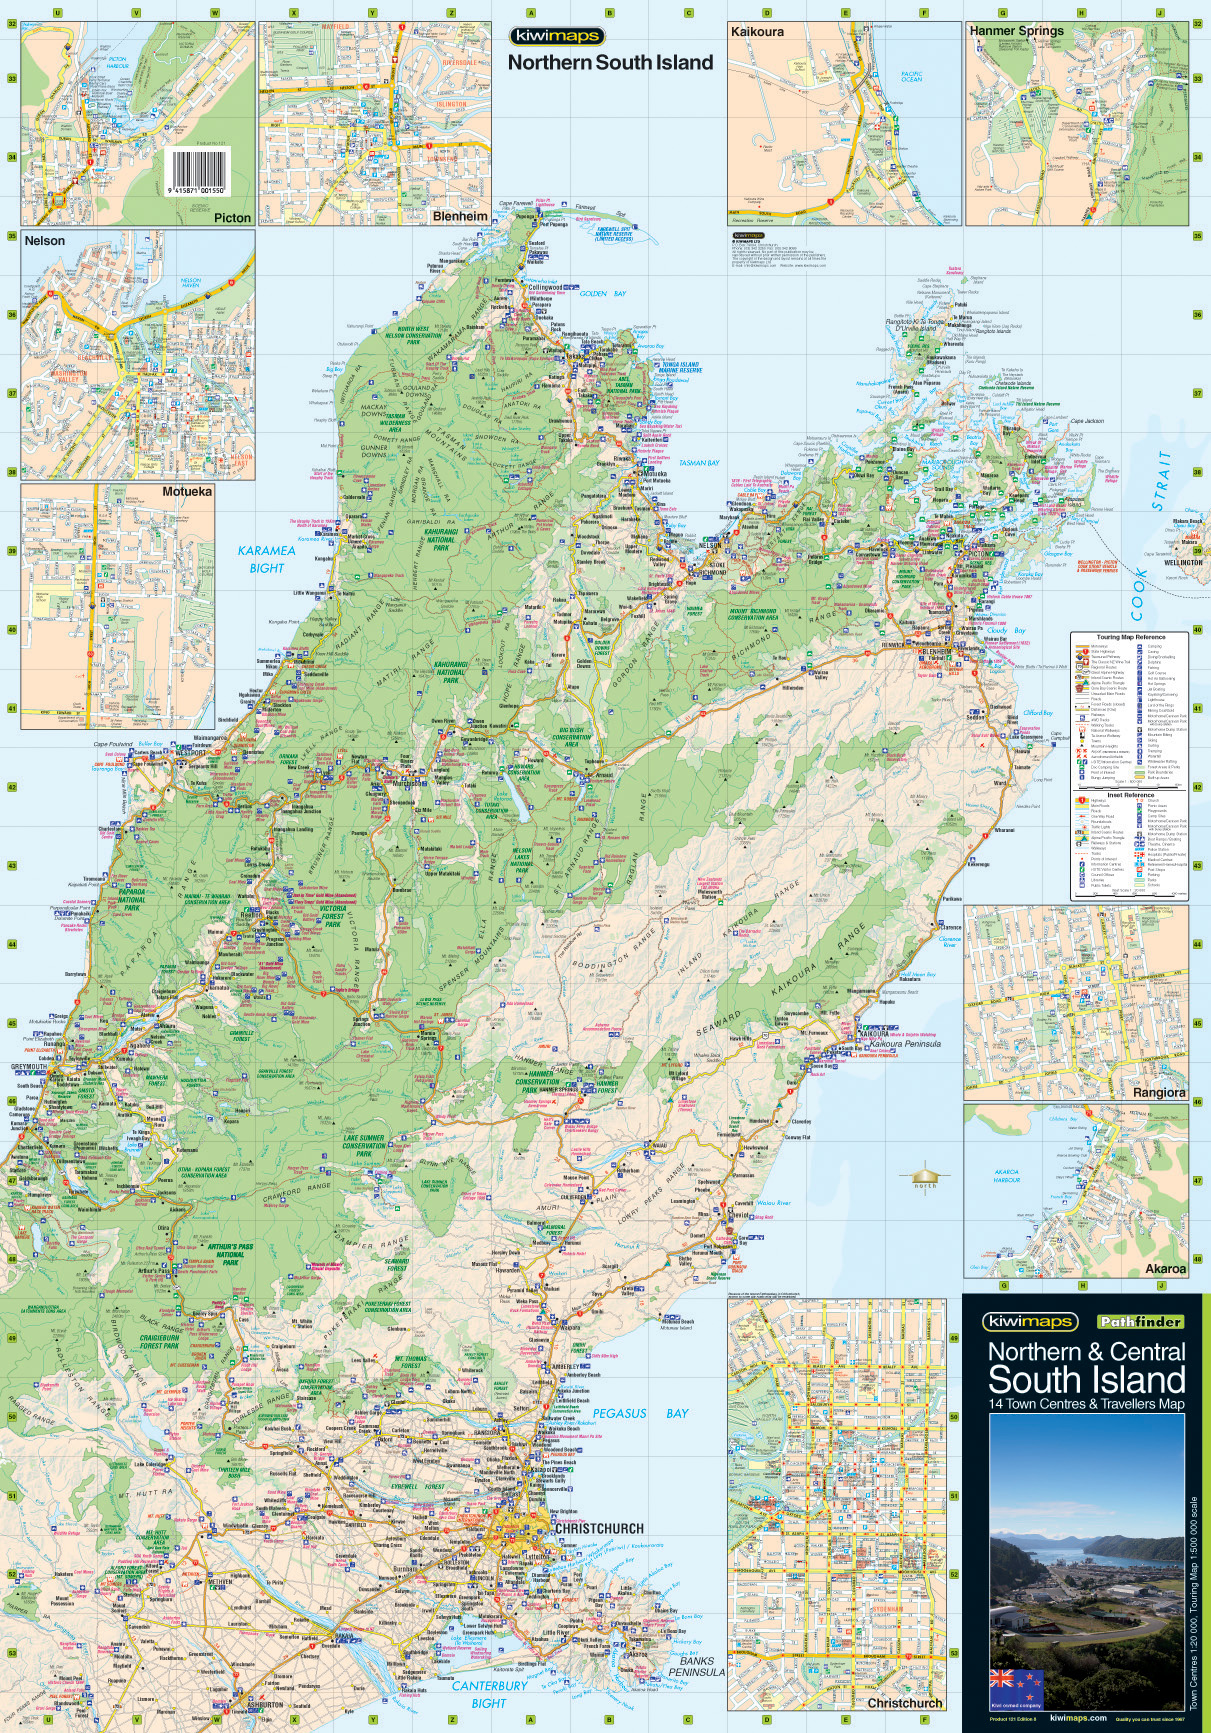 Road Map Of New Zealand South Island.Northern Central South Island Road Map